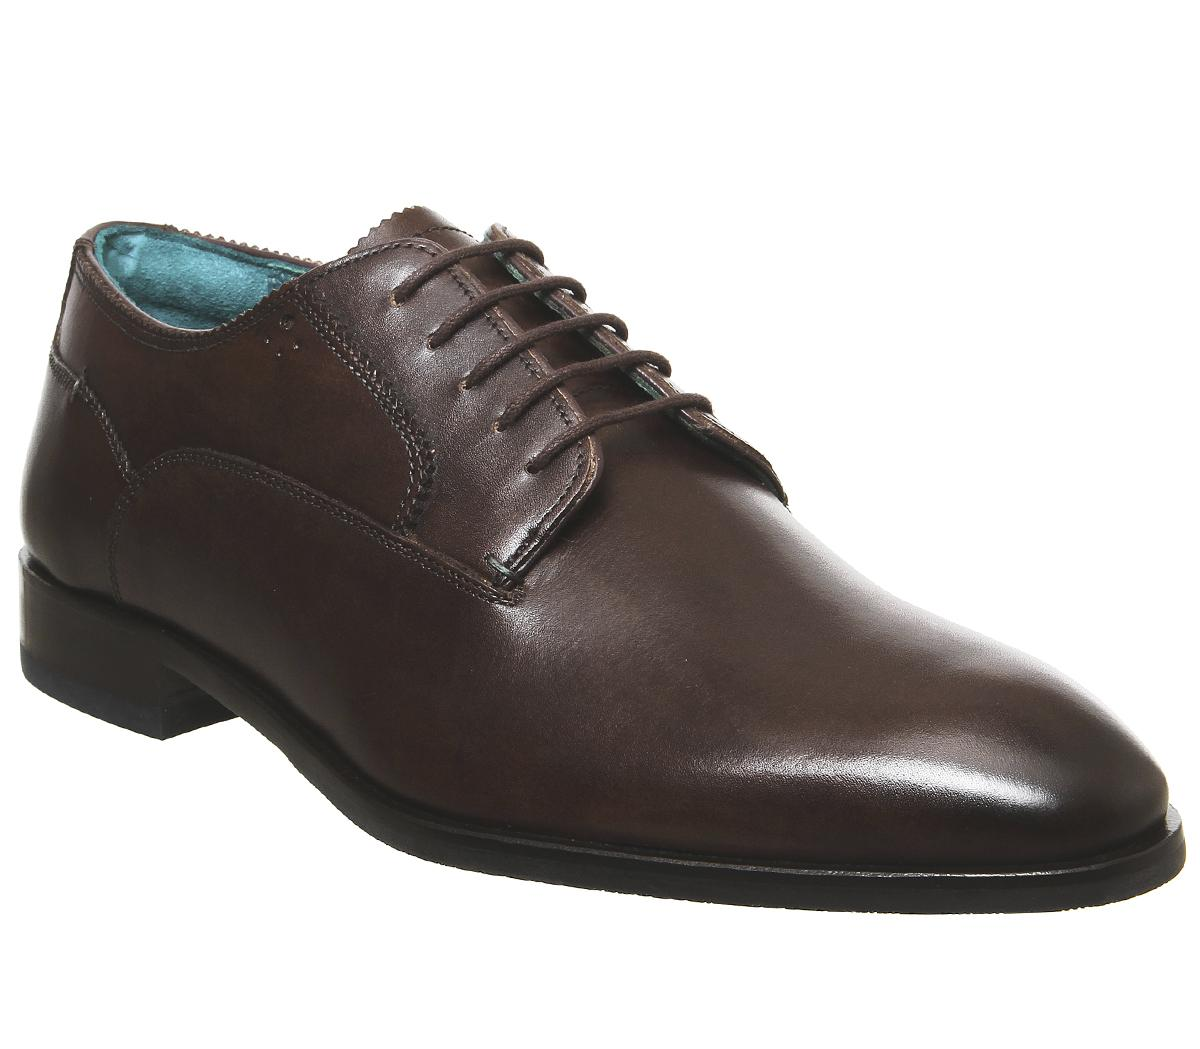 Parals Derby Shoes